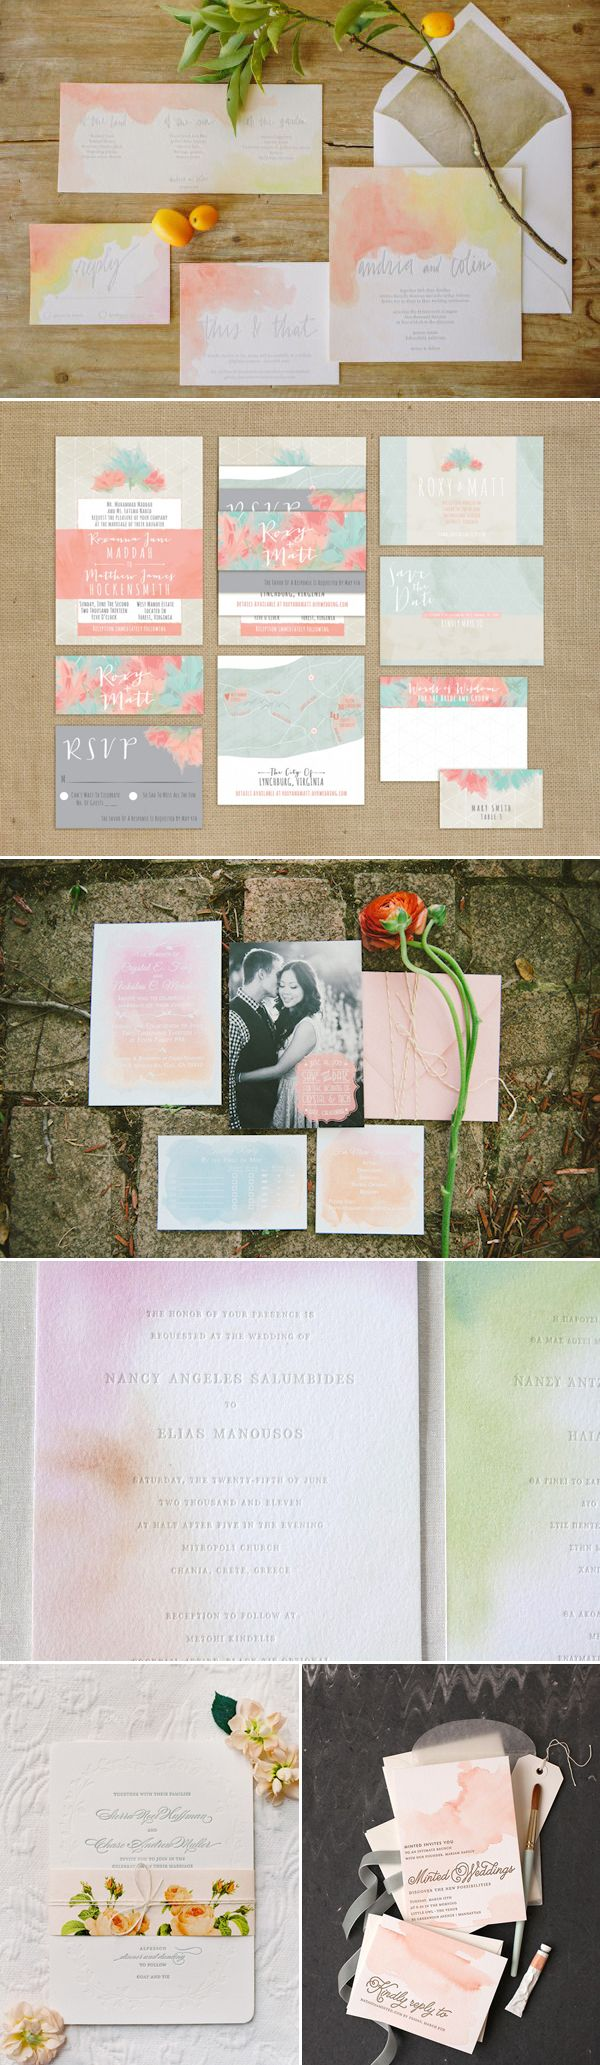 23 Most Beautiful Watercolor Invitations